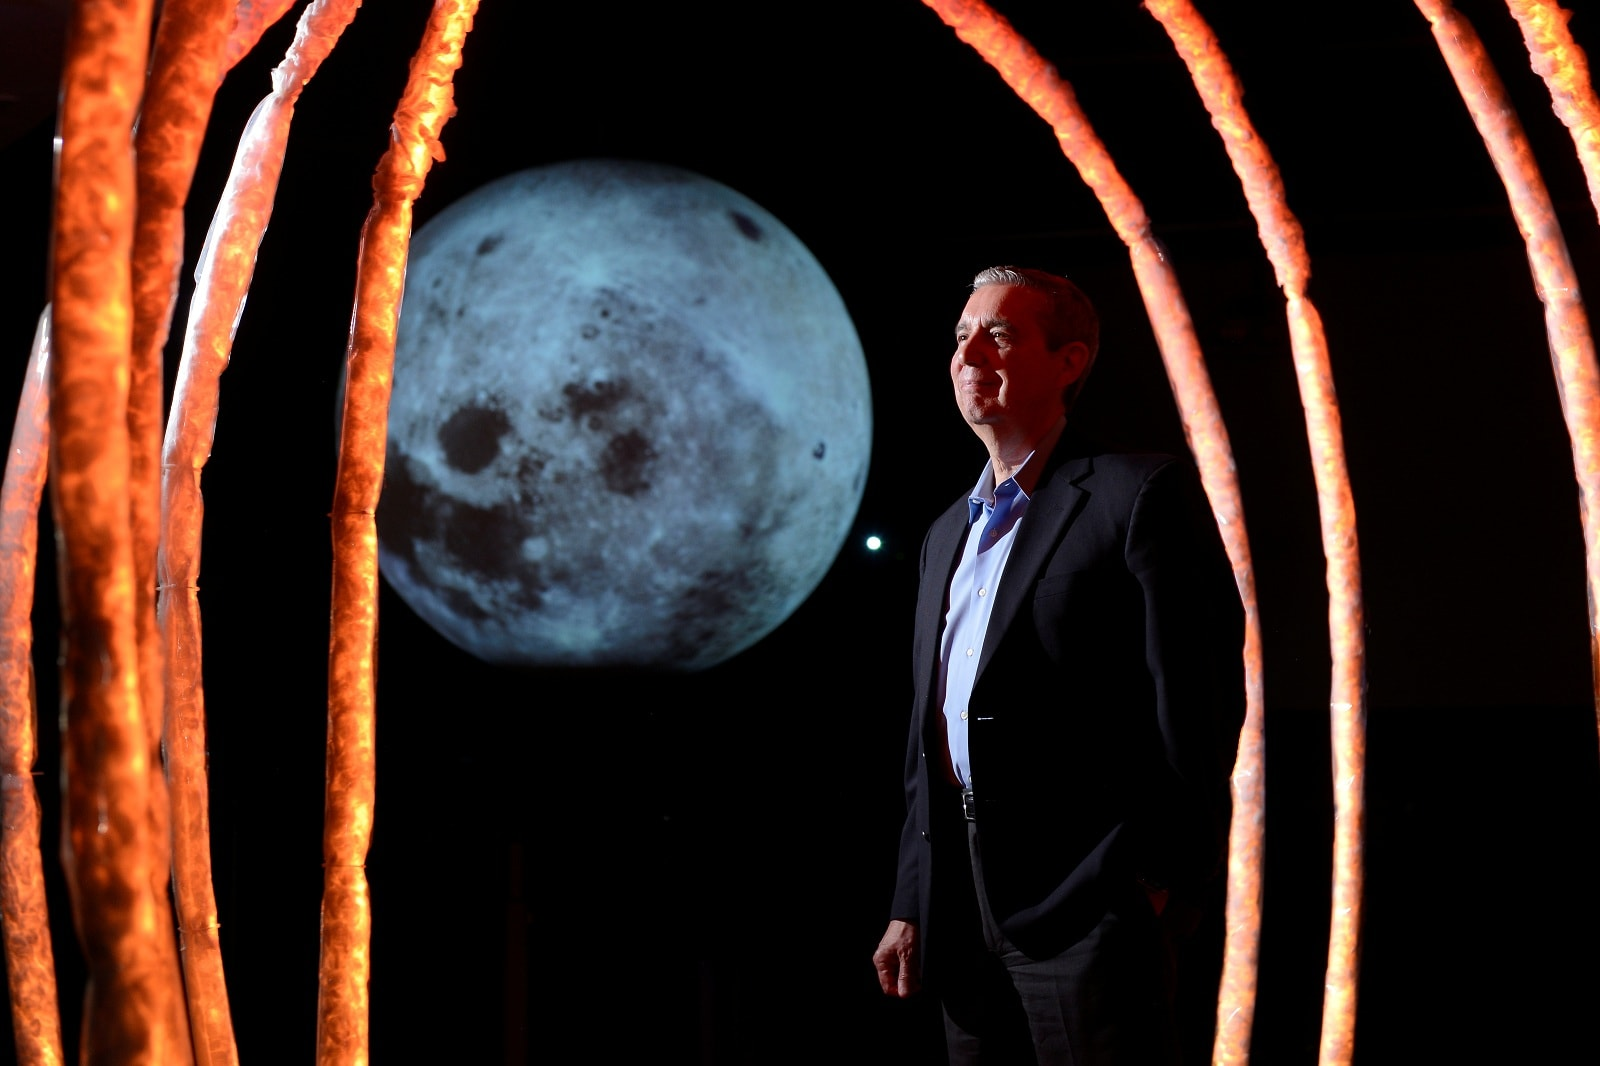 Jack Burns, who is working with NASA to put telescopes on the moon by using telerobotic technology, stands for a portrait at the Fiske Planetarium in Boulder, Colorado, US, June 24, 2019. REUTERS/Michael Ciaglo